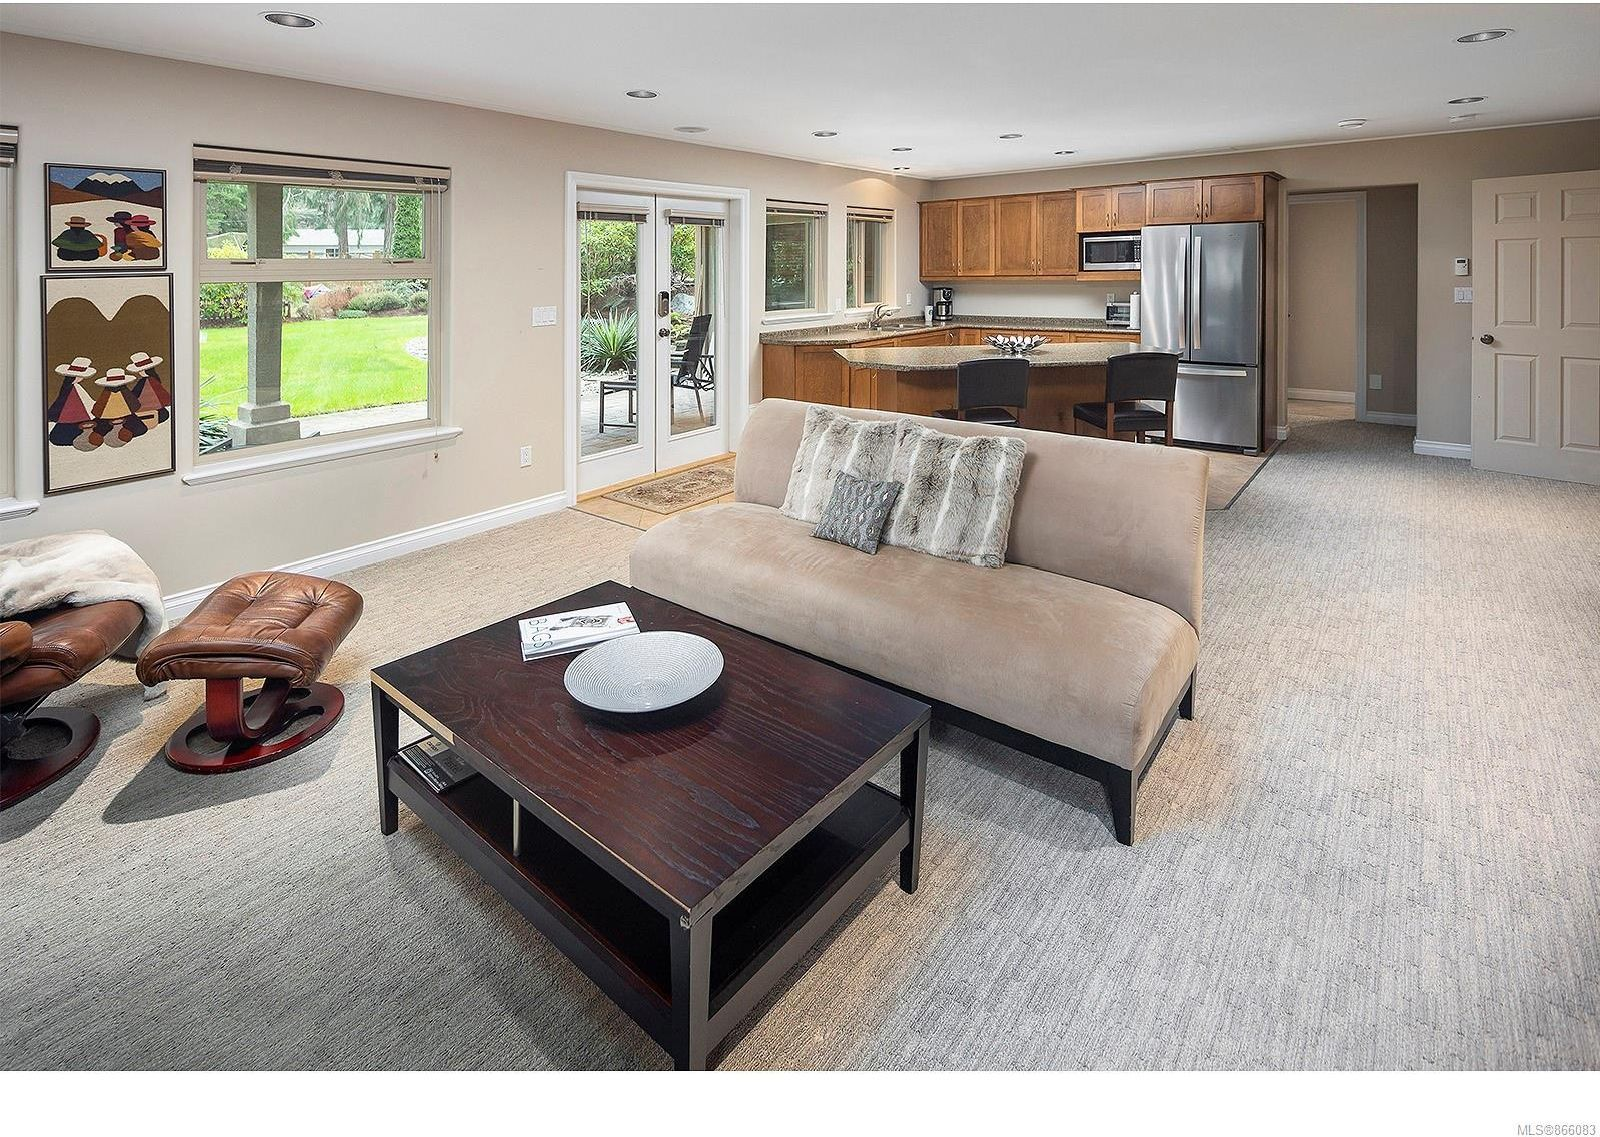 Photo 38: Photos: 5302 Sayward Hill Cres in : SE Cordova Bay House for sale (Saanich East)  : MLS®# 866083